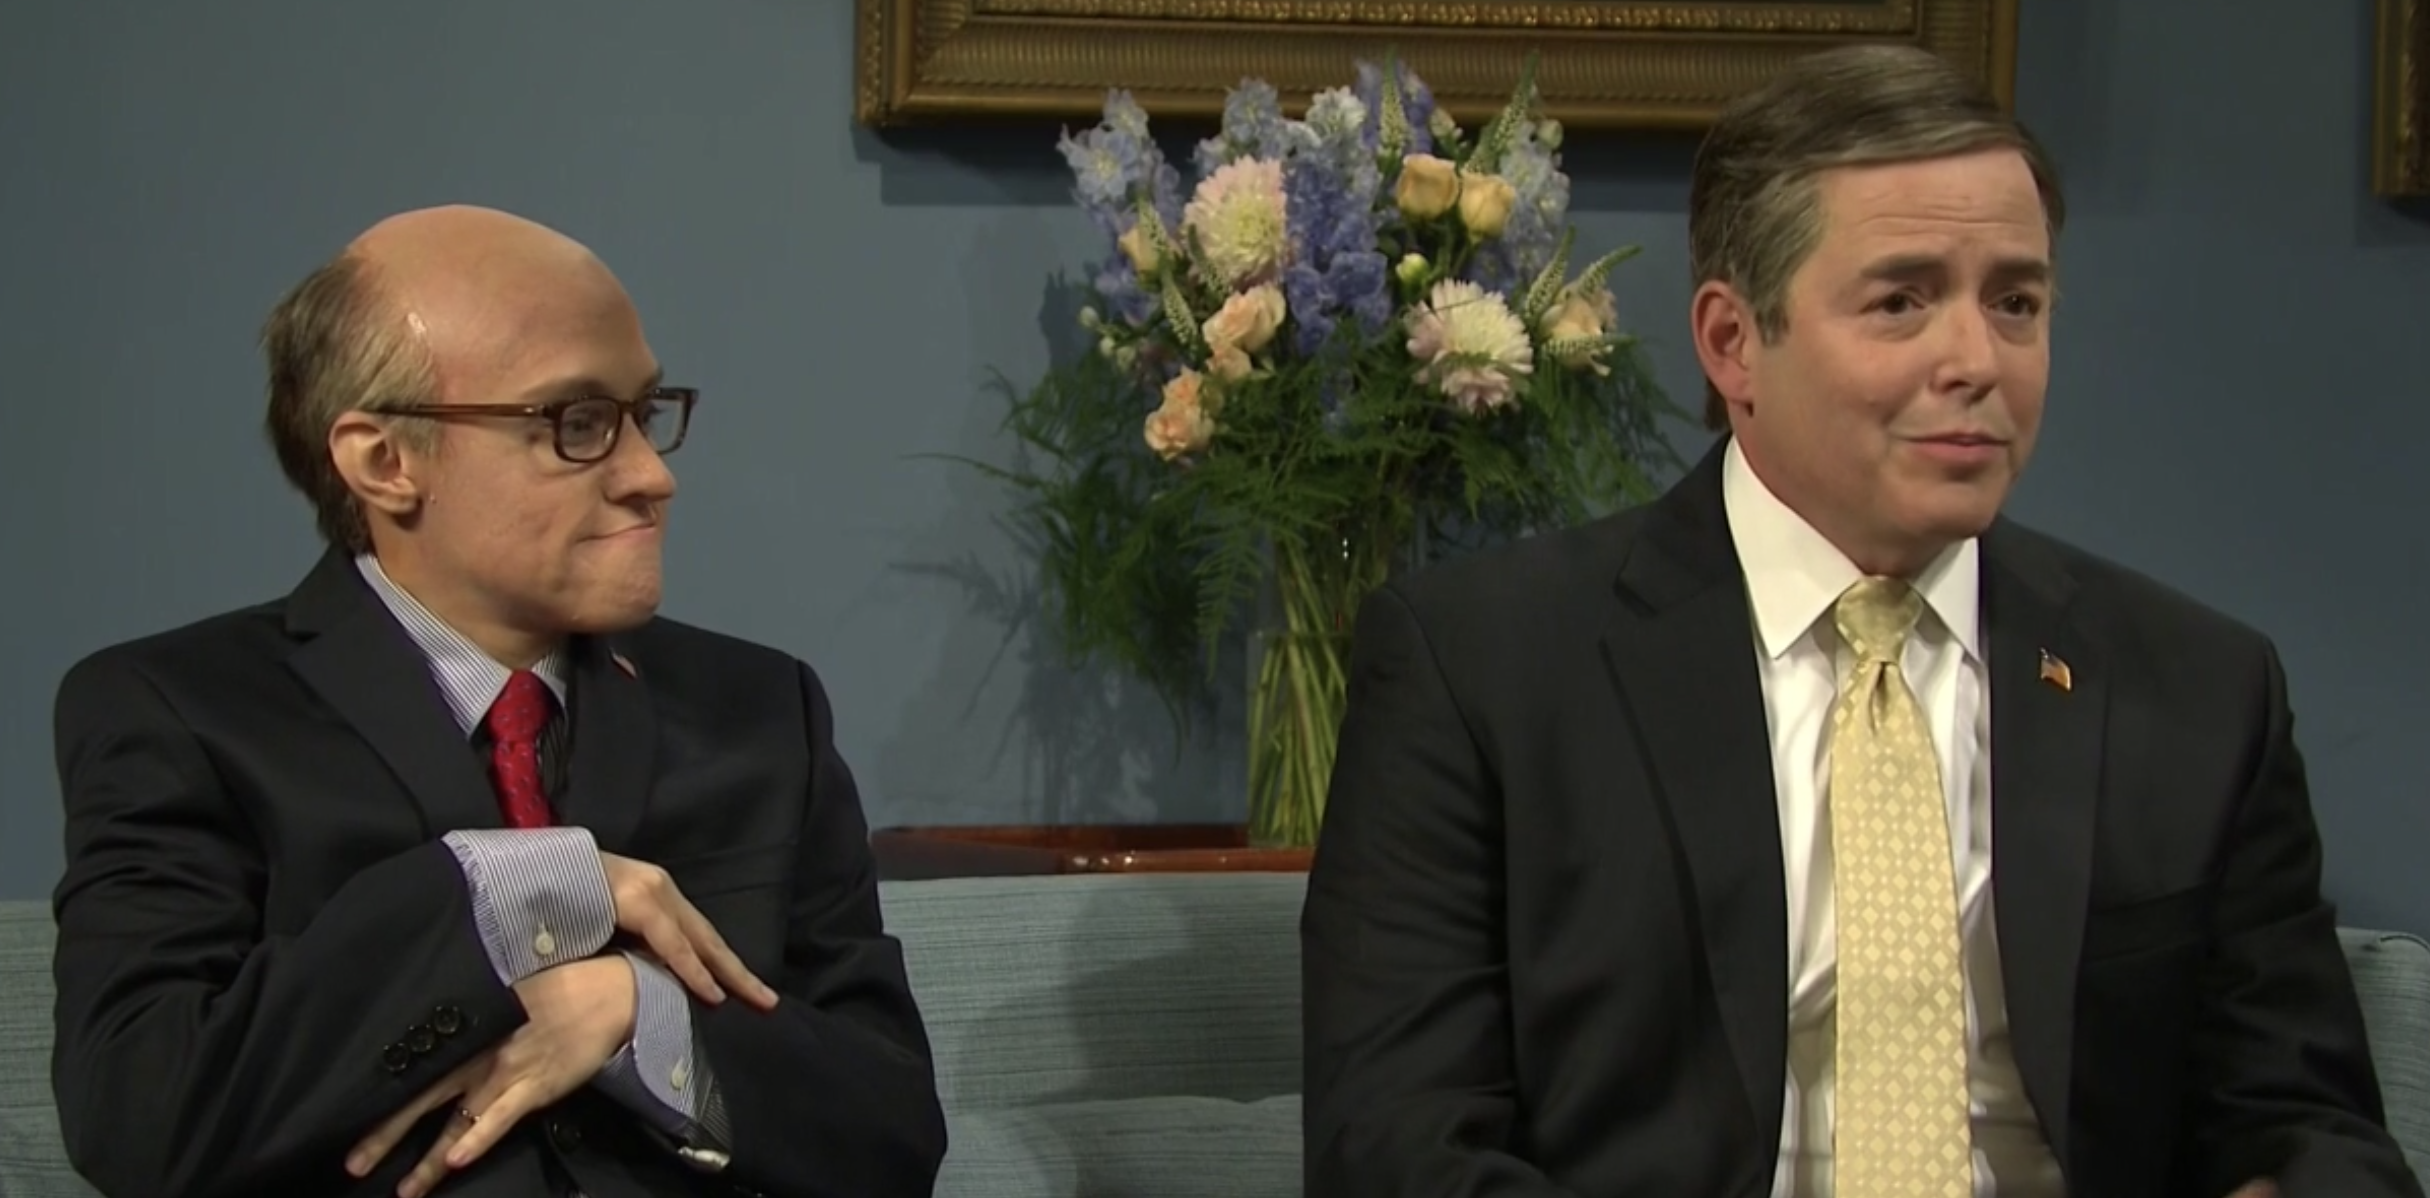 Matthew Broderick amazing performance as Mike Pompeo in 'Saturday Night Live' Cold Open